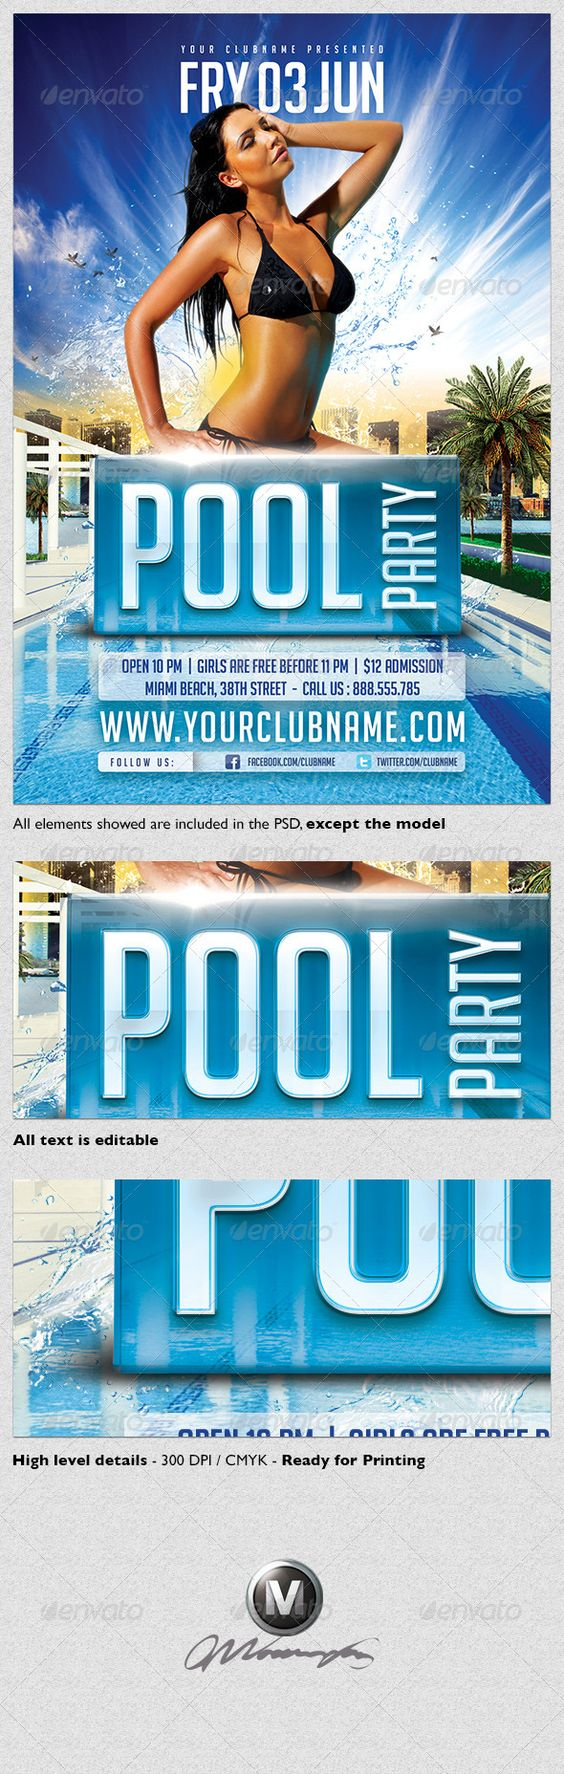 pool party flyer template graphicriver item for nightlife pool party flyer template graphicriver item for